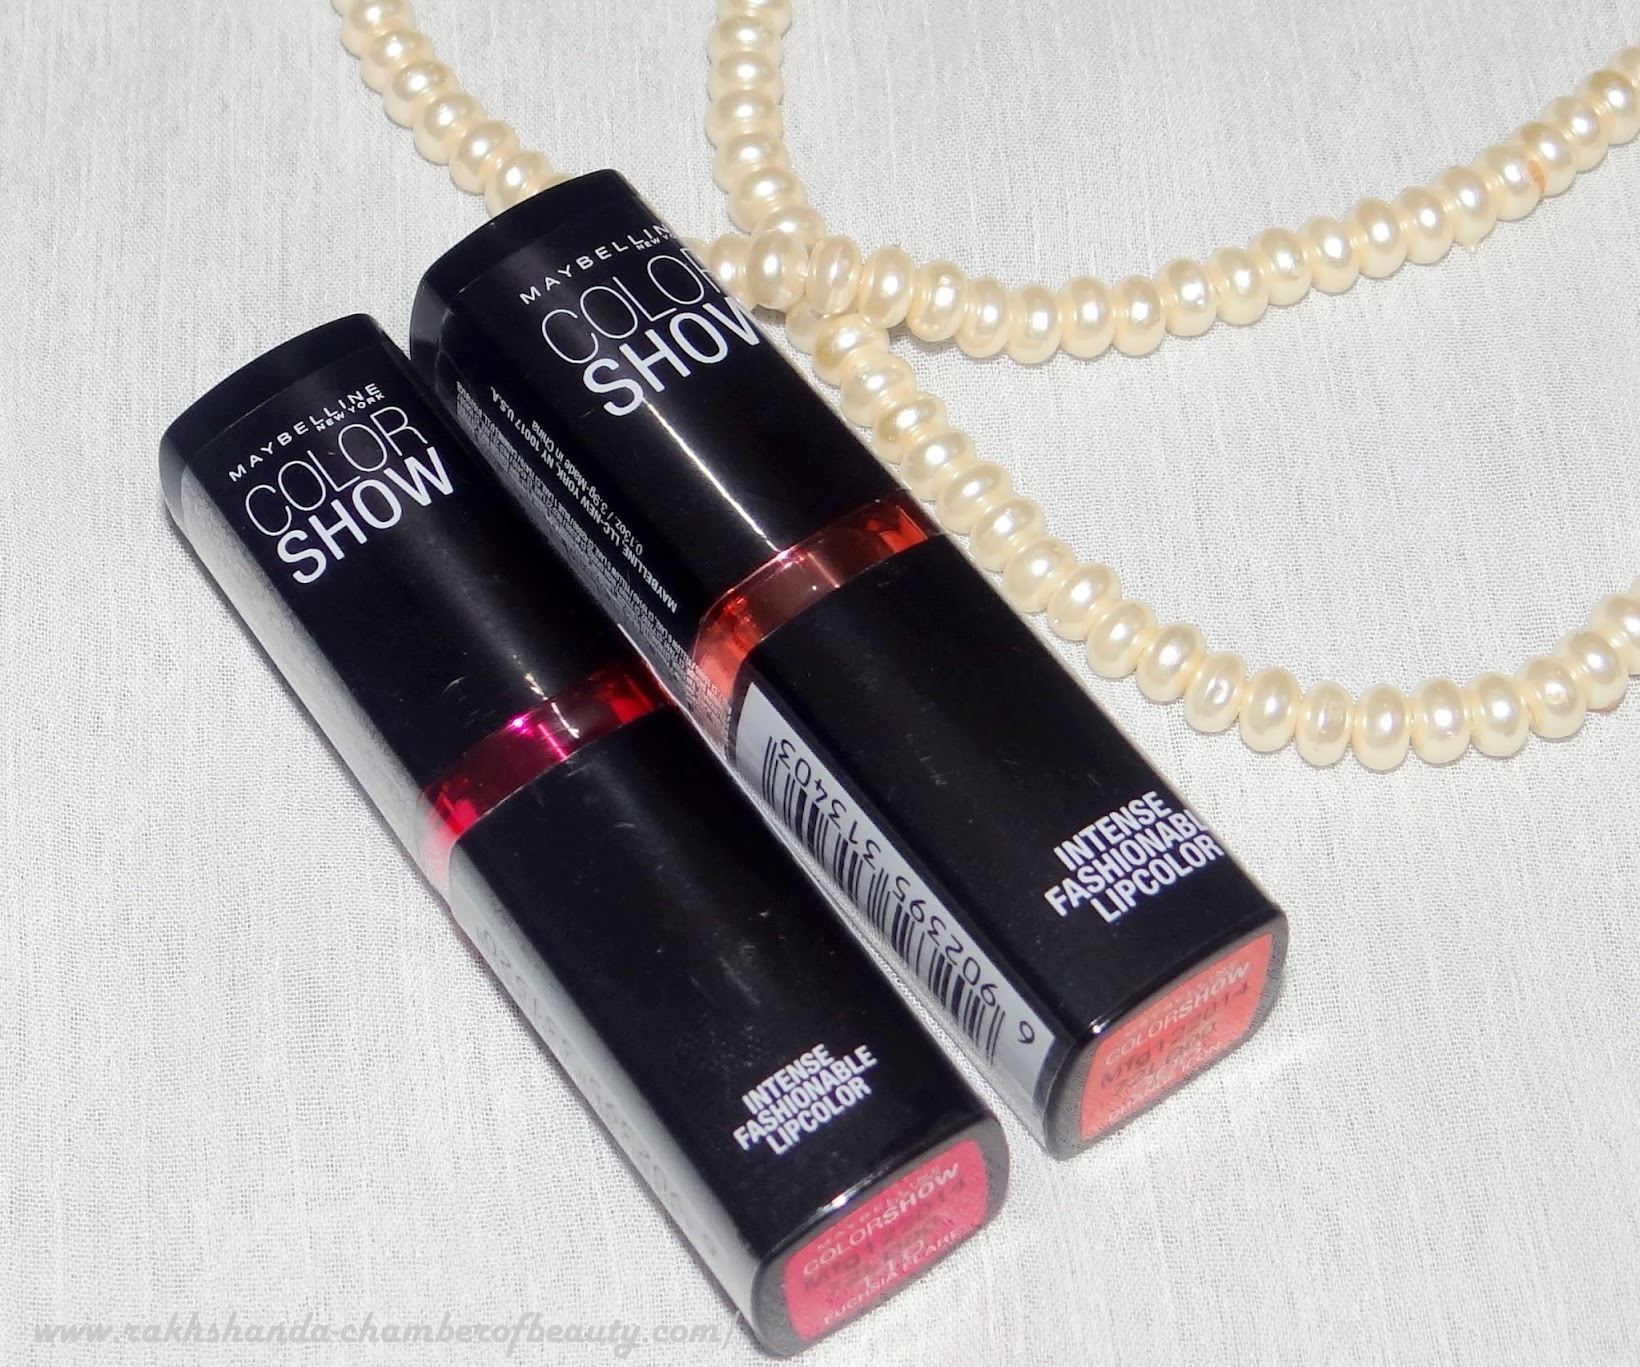 Maybelline NY Color Show Lipsticks- Review, swatches & price in India, Intense Fashionable lipcolor, Indian Beauty blogger